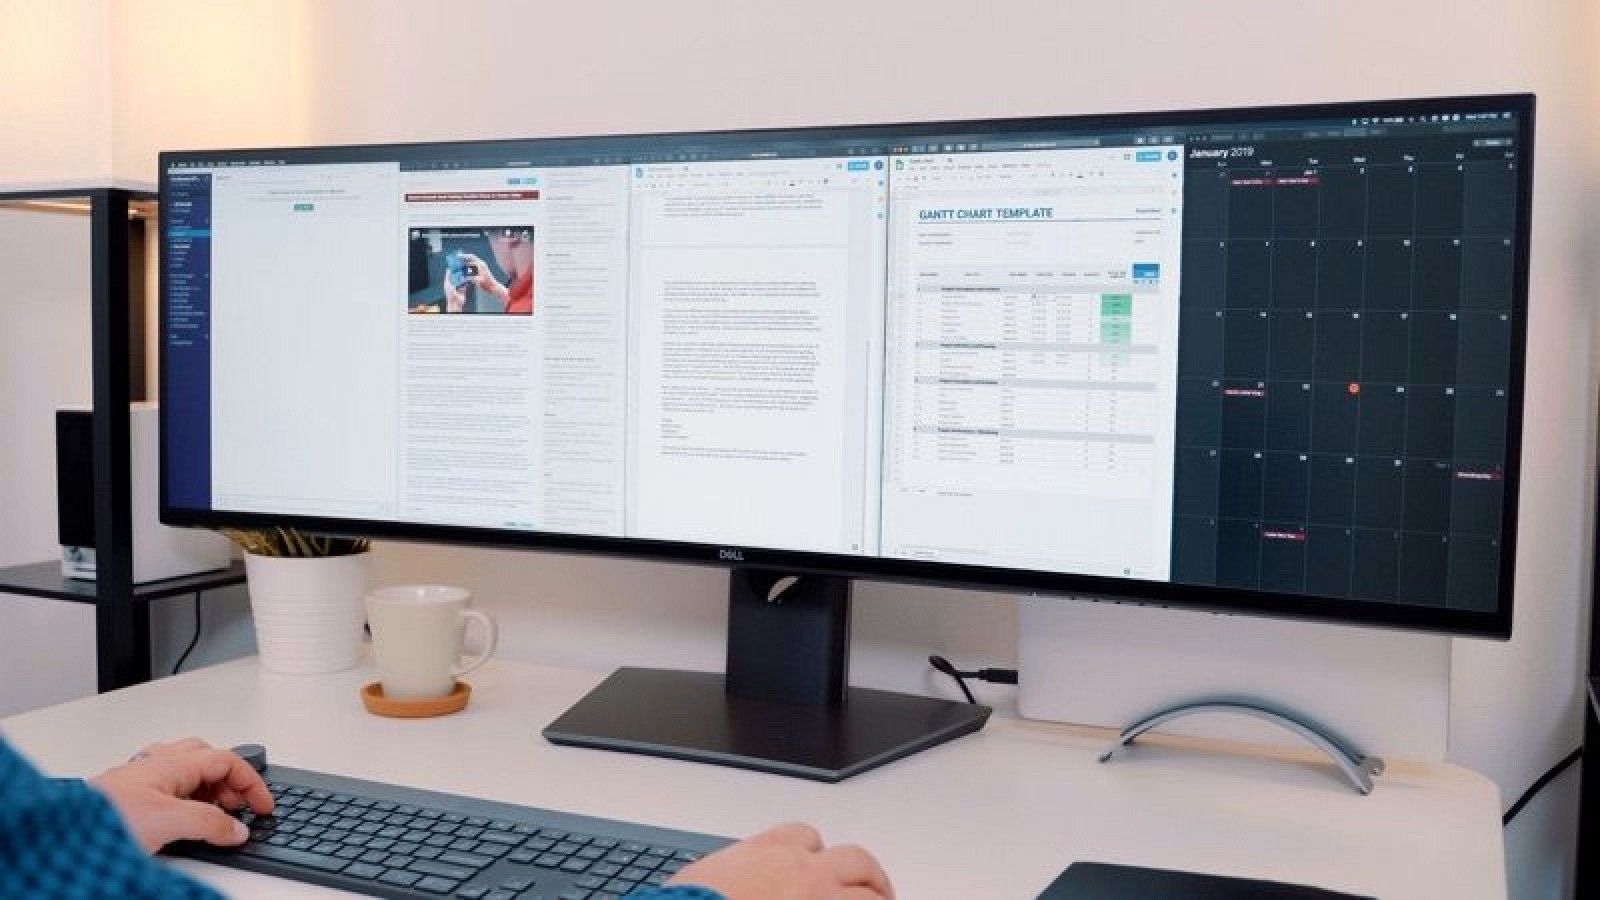 Hands-On With Dell's Massive 49-Inch 5K Ultrawide Display - MacRumors